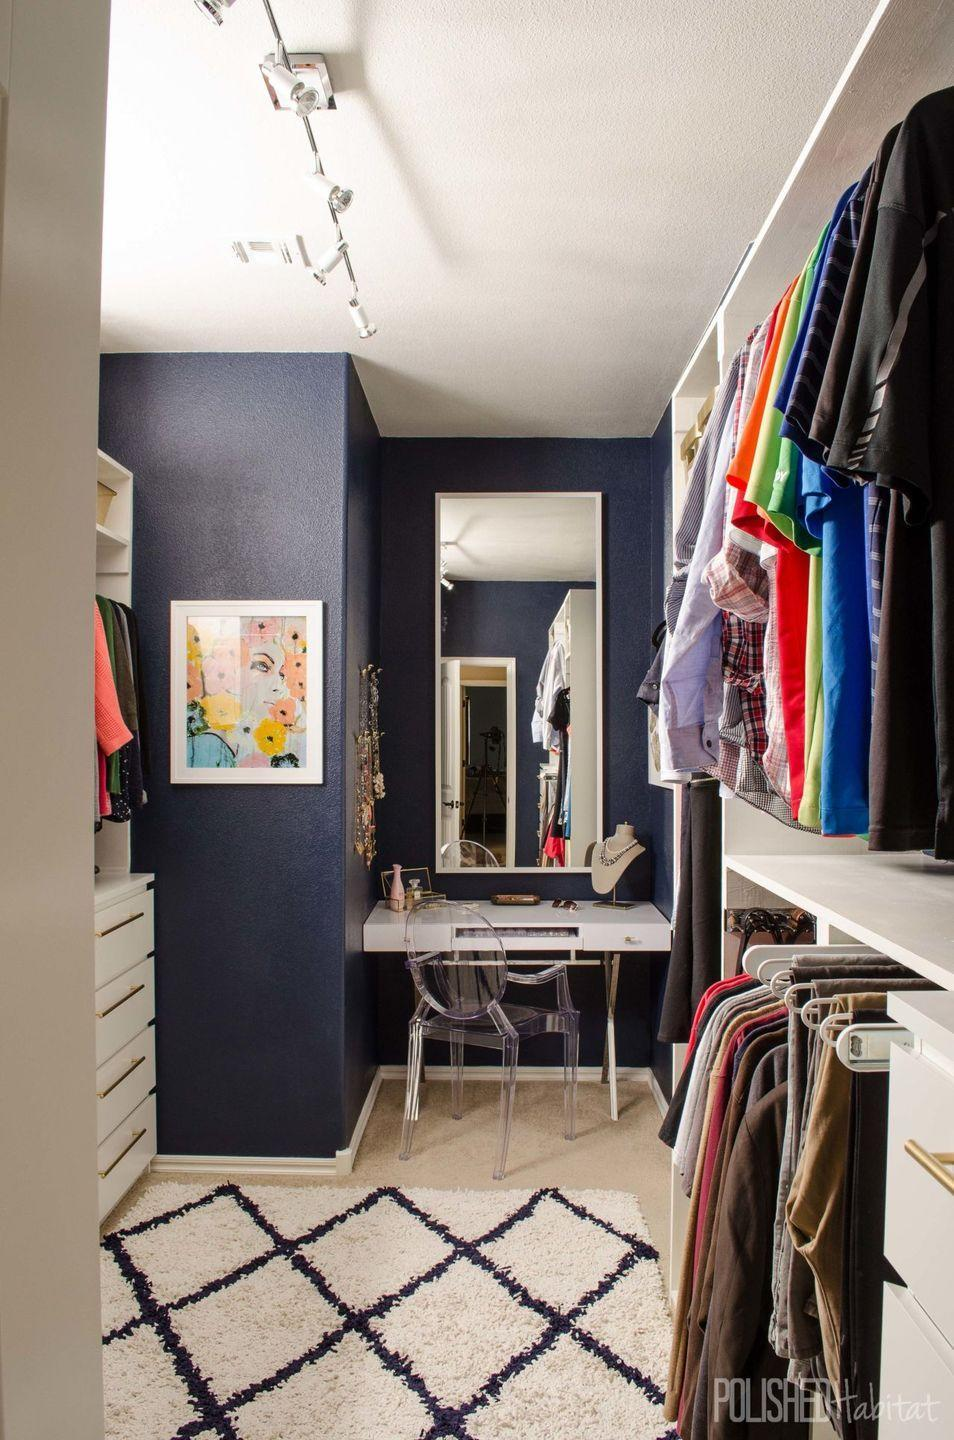 """<p>Instead of trying to make a unit tucked into a nook work, this homeowner embraced the area for her vanity and added bonus clothing storage with extra dressers.</p><p><em><a href=""""http://www.polishedhabitat.com/2015/master-closet-organization/"""" rel=""""nofollow noopener"""" target=""""_blank"""" data-ylk=""""slk:See more at Polished Habitat »"""" class=""""link rapid-noclick-resp"""">See more at Polished Habitat »</a></em></p><p><strong>What you'll need: </strong><span class=""""redactor-invisible-space"""">closet storage system, $124, <a href=""""https://www.amazon.com/ClosetMaid-22875-ShelfTrack-Adjustable-Organizer/dp/B0026SRX5Y/?tag=syn-yahoo-20&ascsubtag=%5Bartid%7C10063.g.36078080%5Bsrc%7Cyahoo-us"""" rel=""""nofollow noopener"""" target=""""_blank"""" data-ylk=""""slk:amazon.com"""" class=""""link rapid-noclick-resp"""">amazon.com</a></span><br></p>"""